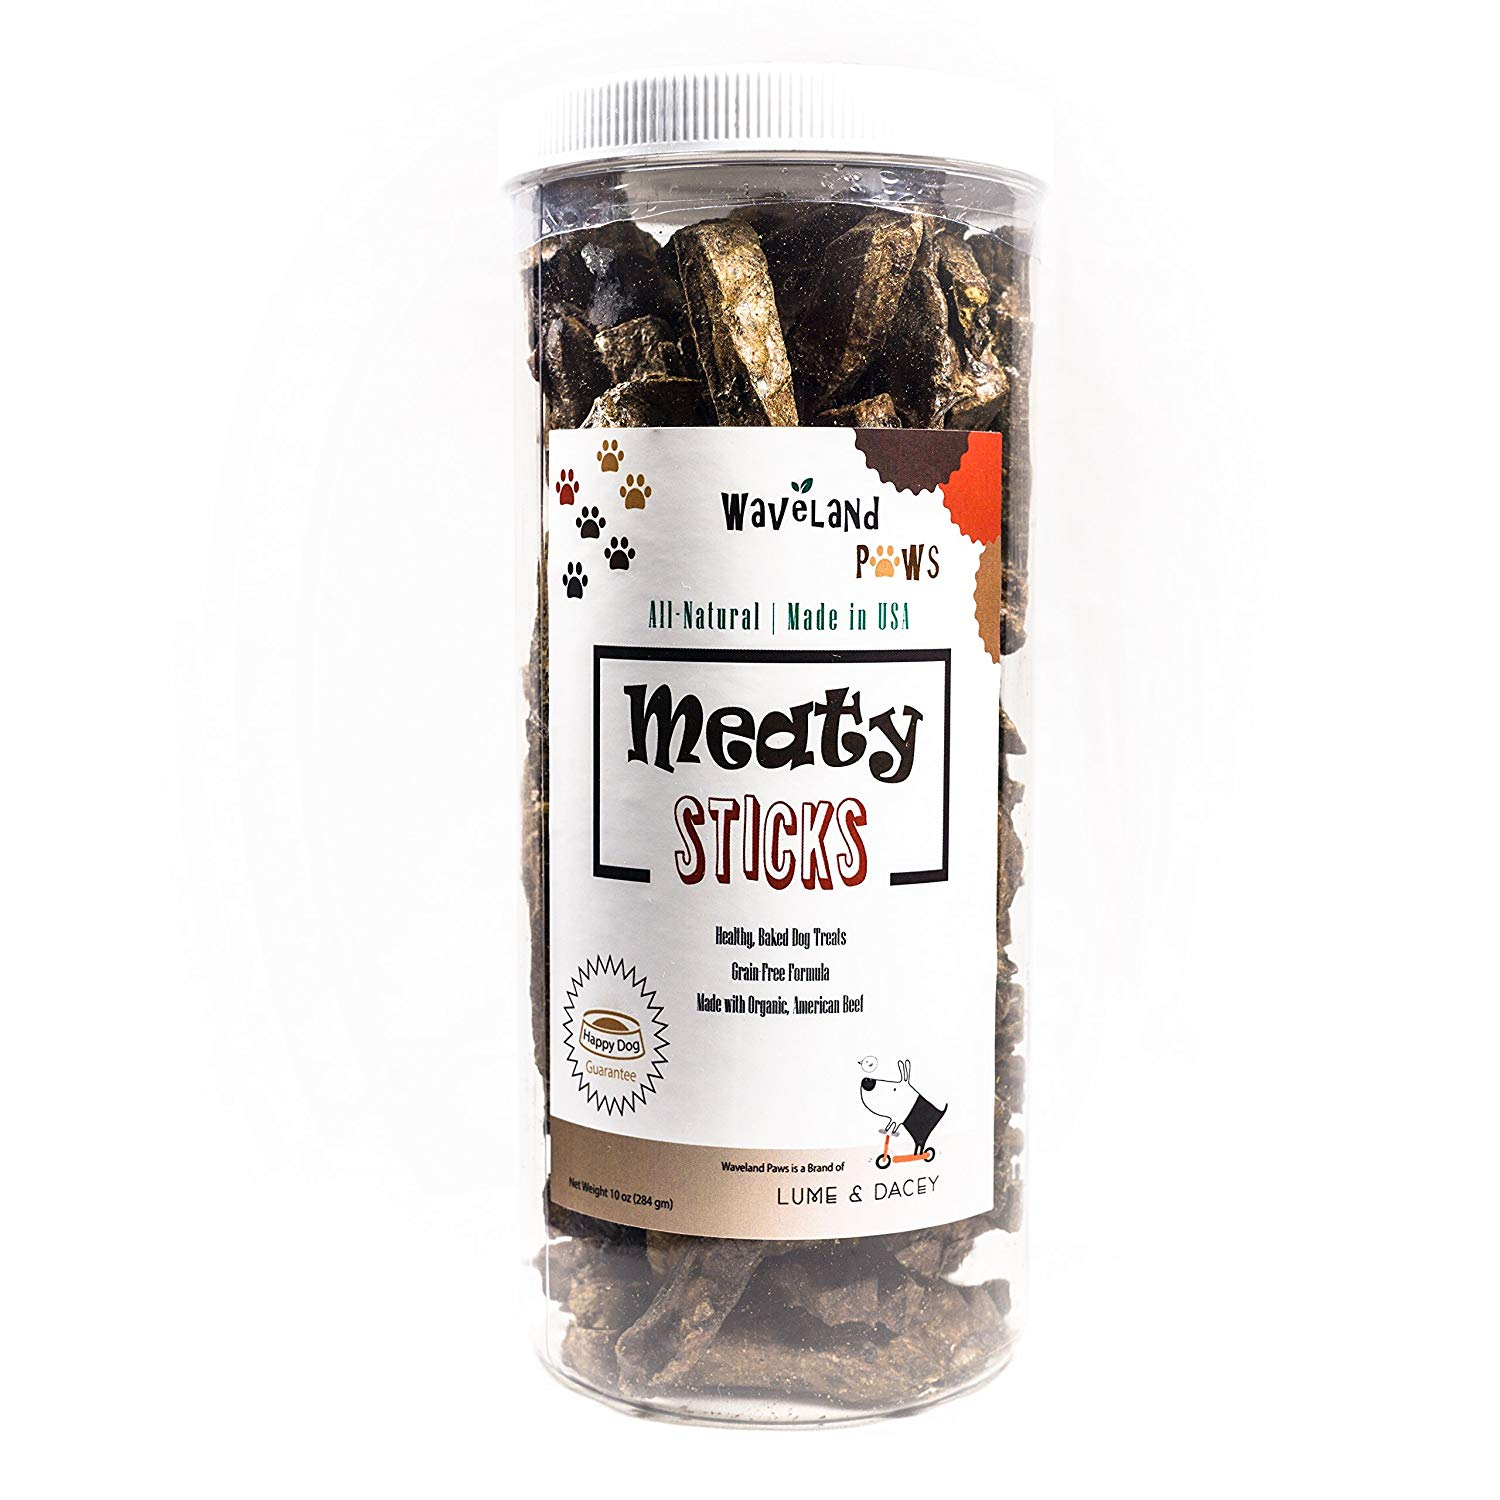 Waveland Paws Organic Dog Treats Reviews by www.puppyurl.com